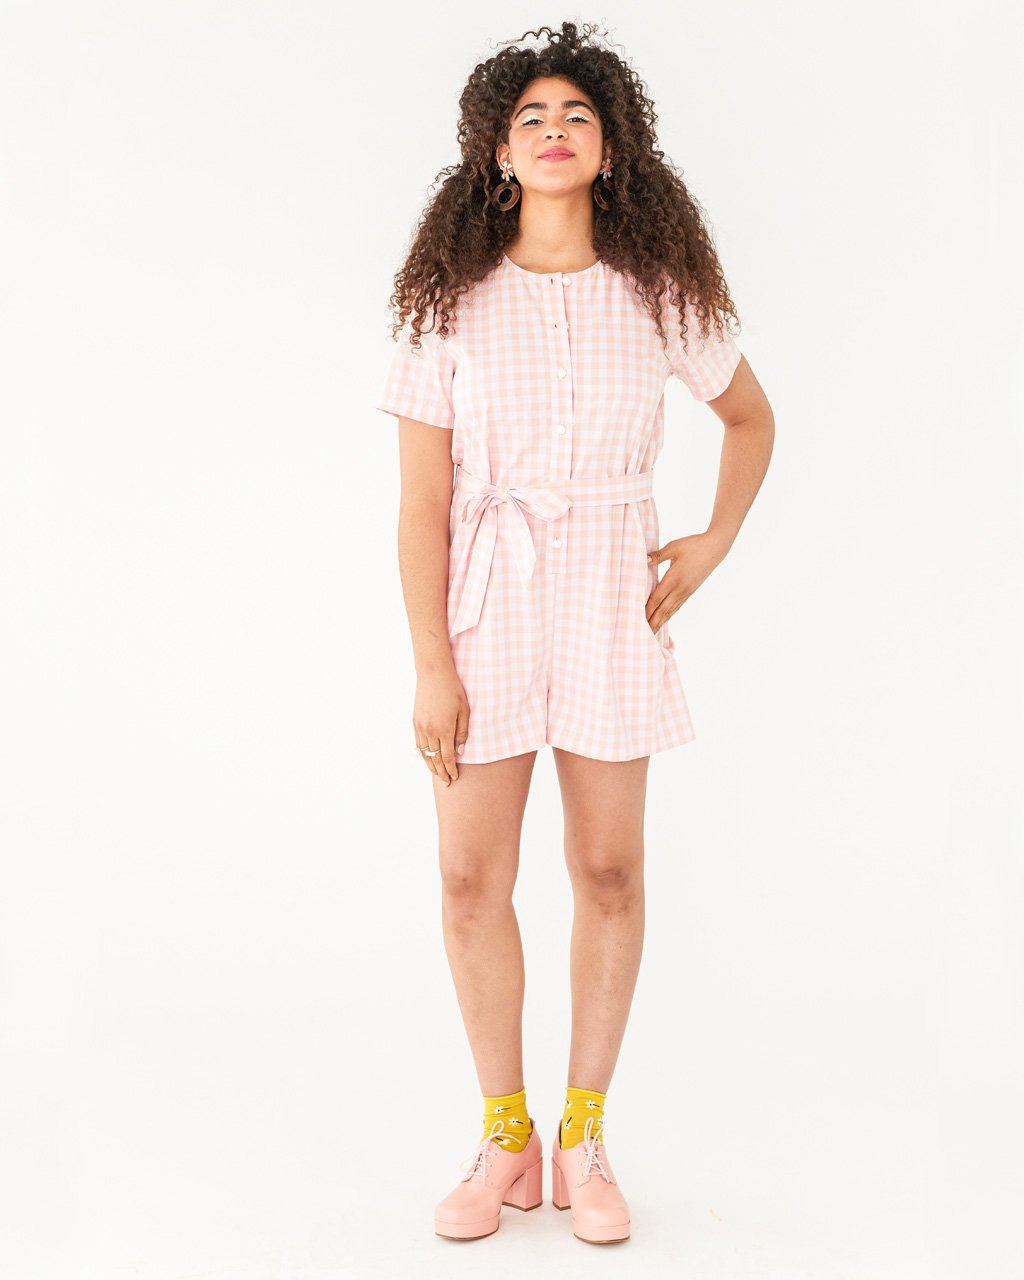 model wearing pink and white picnic plaid romper with tie belt and button-up front paired with pink heeled shoes and yellow socks